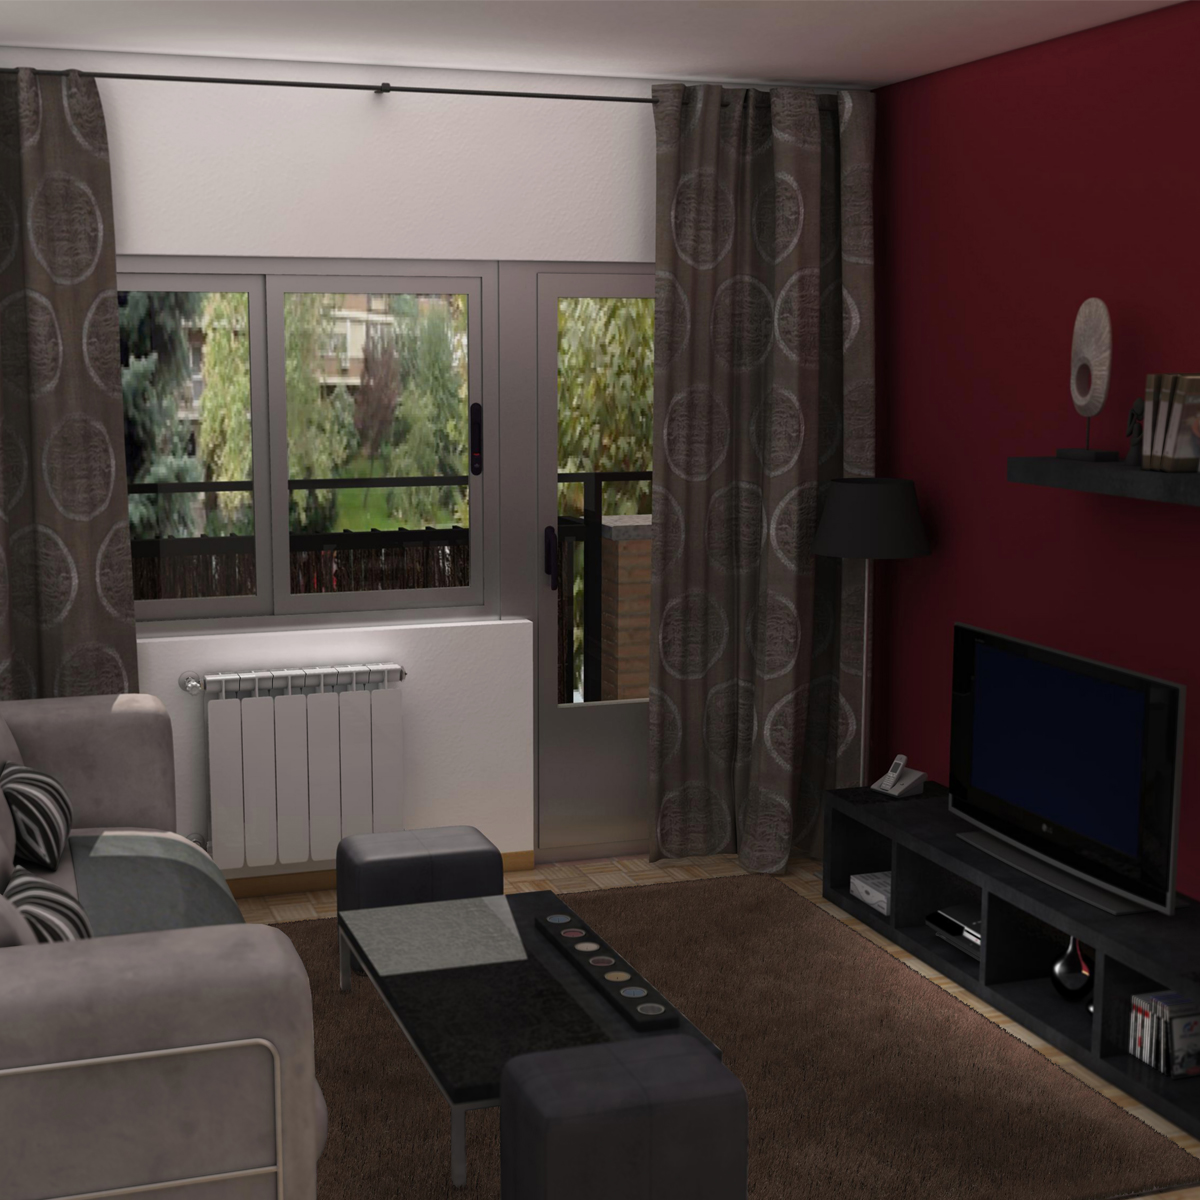 living room 3d model 3ds max fbx c4d ma mb obj 159603